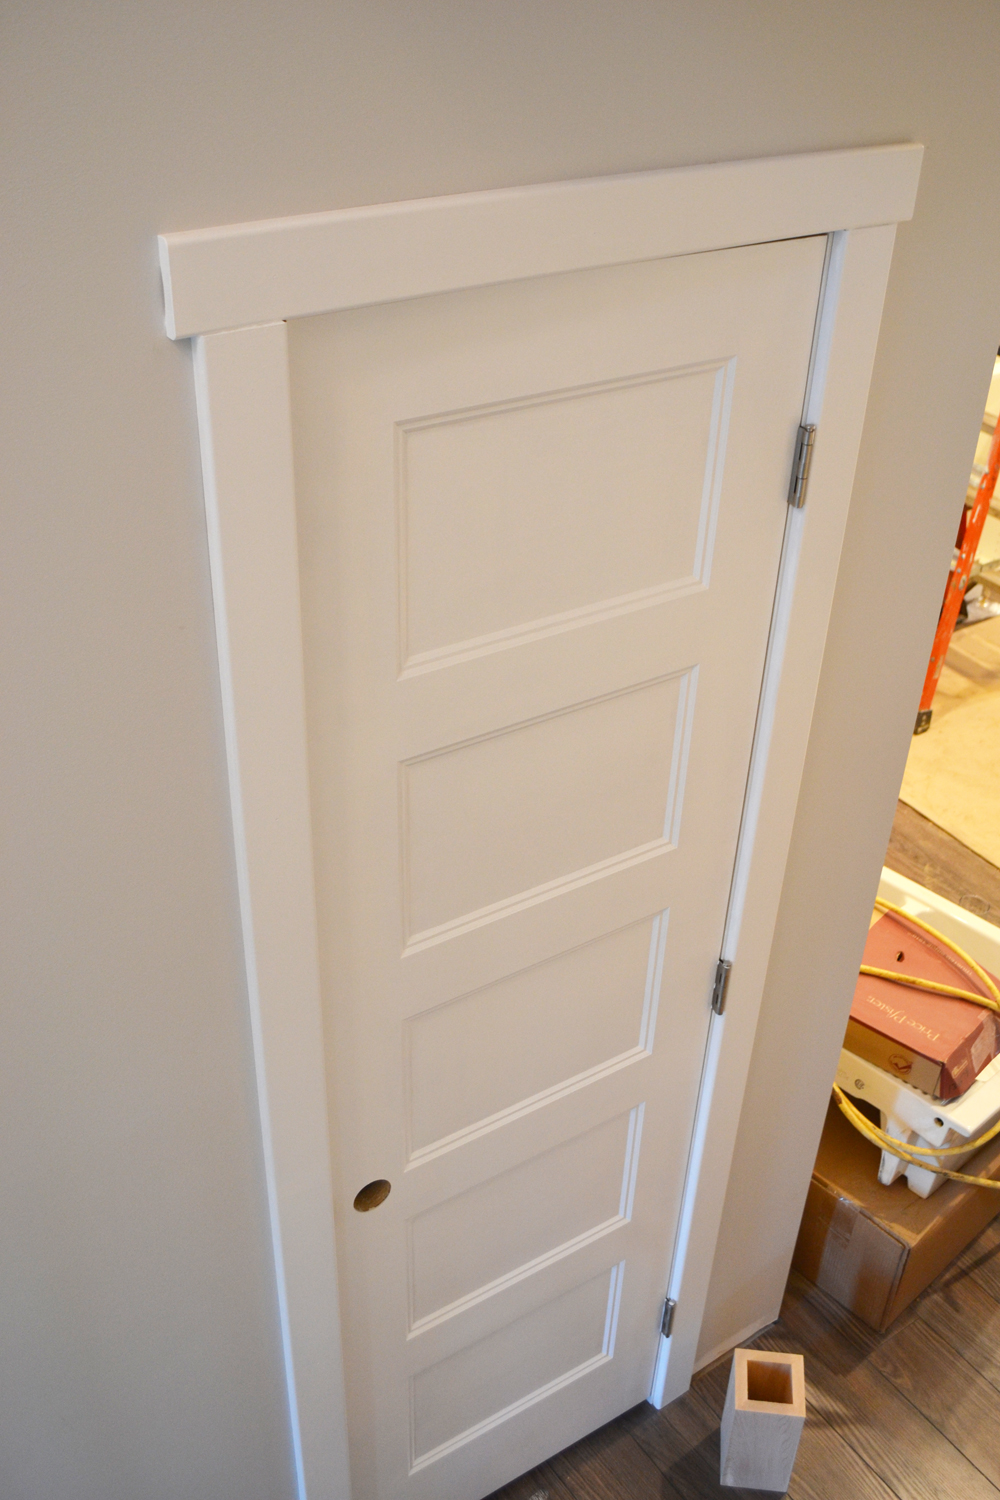 Shaker Style Doors from Windsor Plywood - The DIY Mommy : glossing doors - pezcame.com